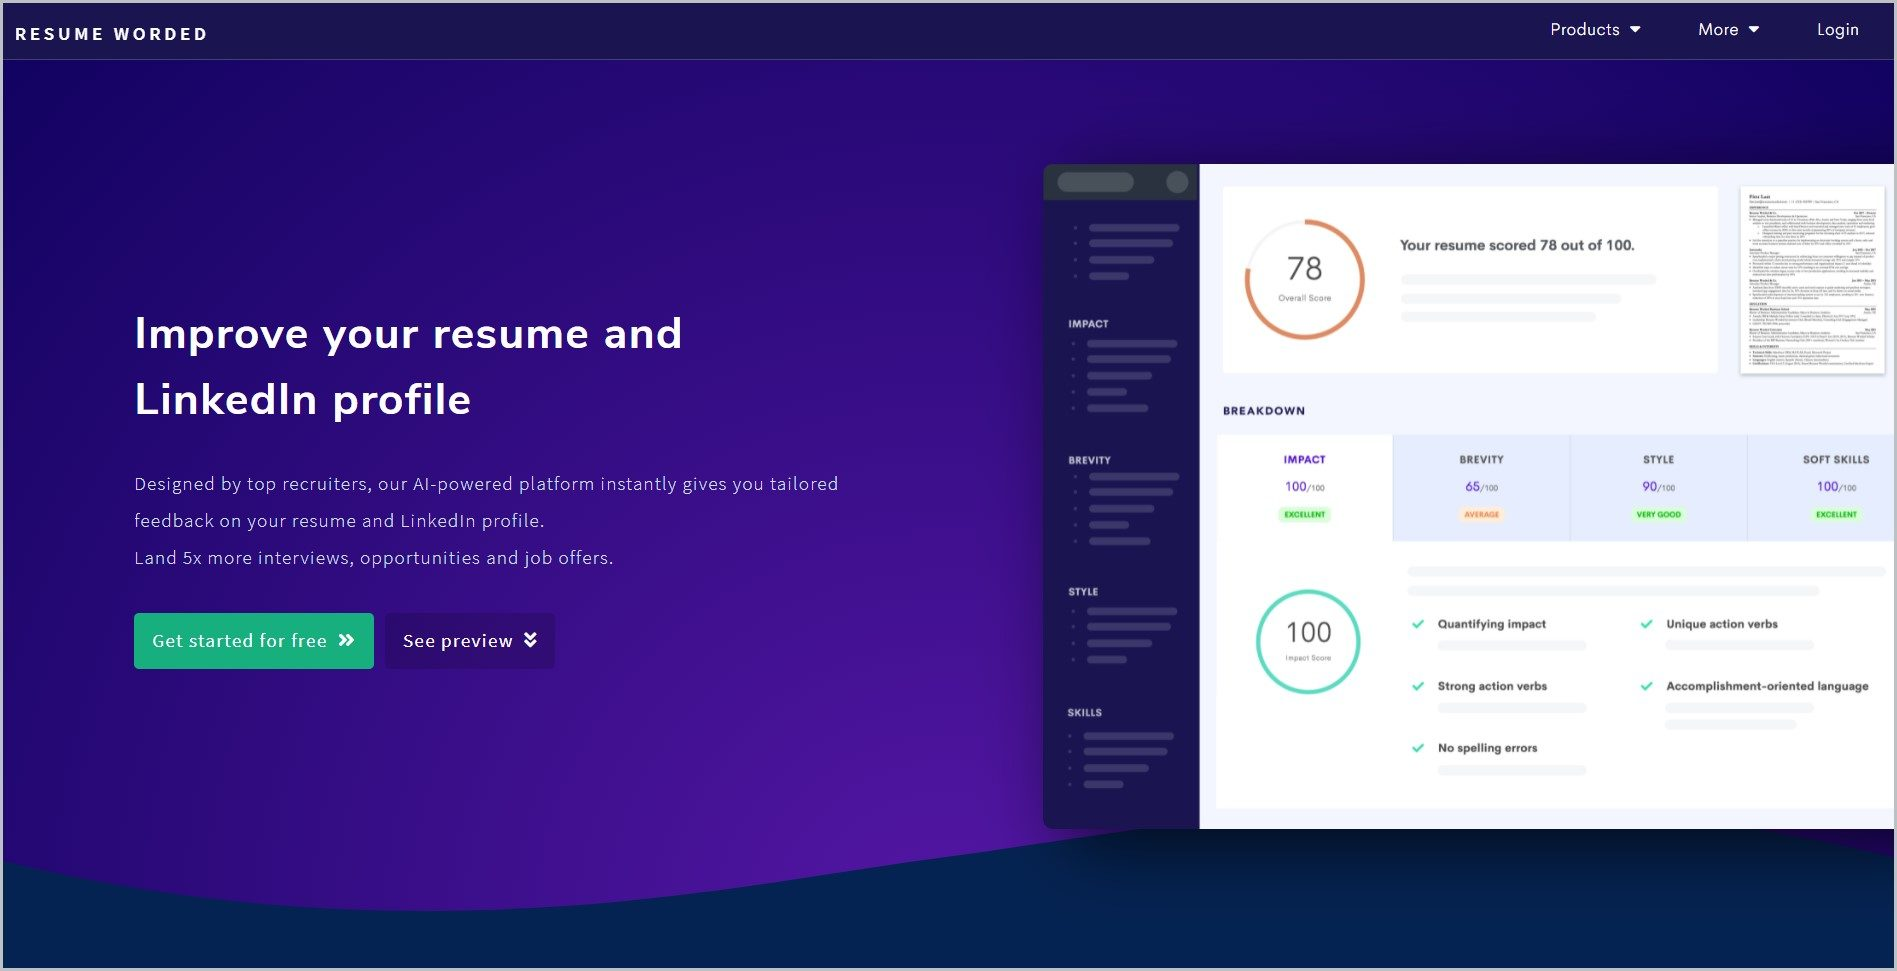 screenshot of Resume Worded homepage with dark blue header with the website's name and main navigation menu, it showcases a generally blue-violet page with an image of their resume tools